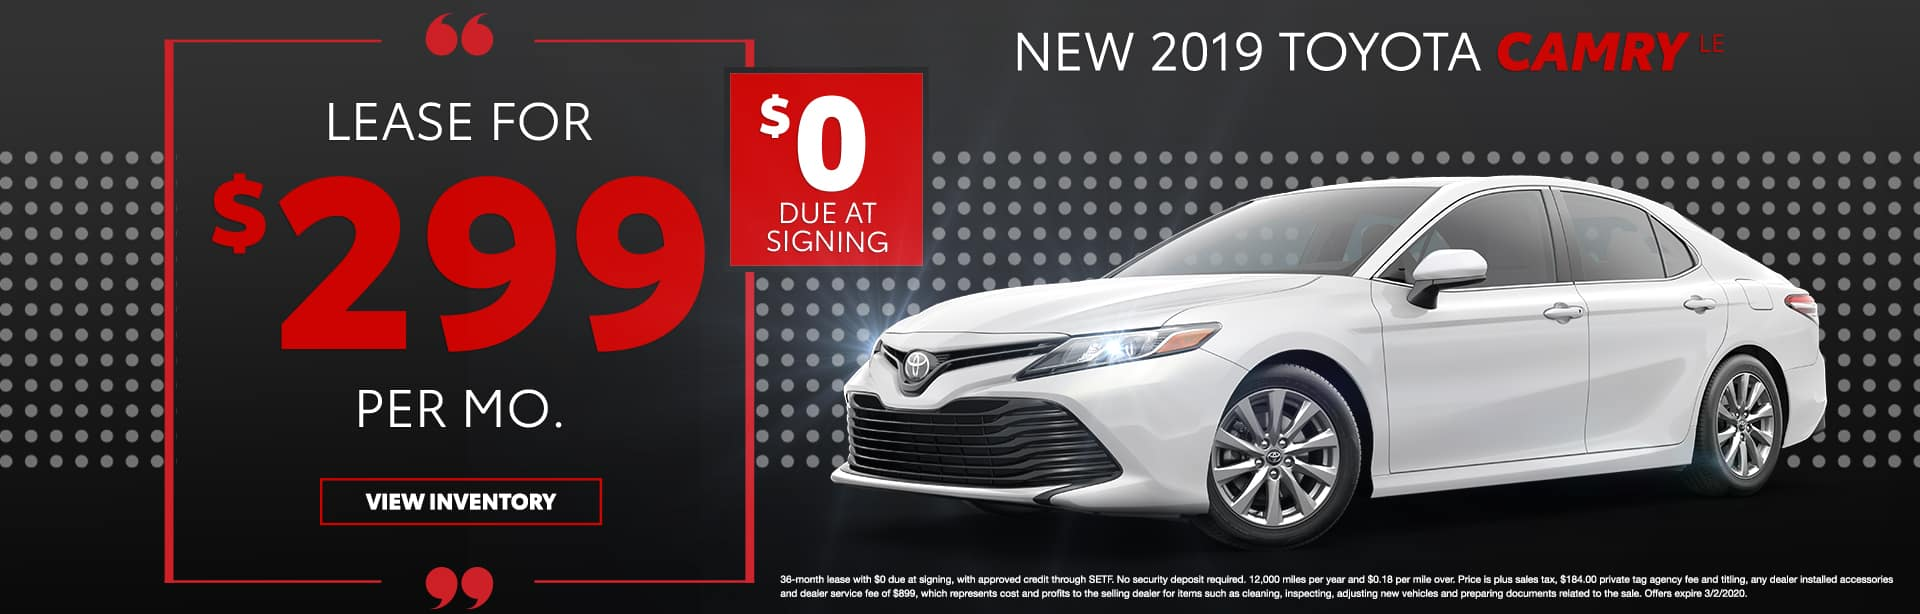 New 2019 Toyota Camry LE   Lease For $299 Per Mo   $0 Due At Signing